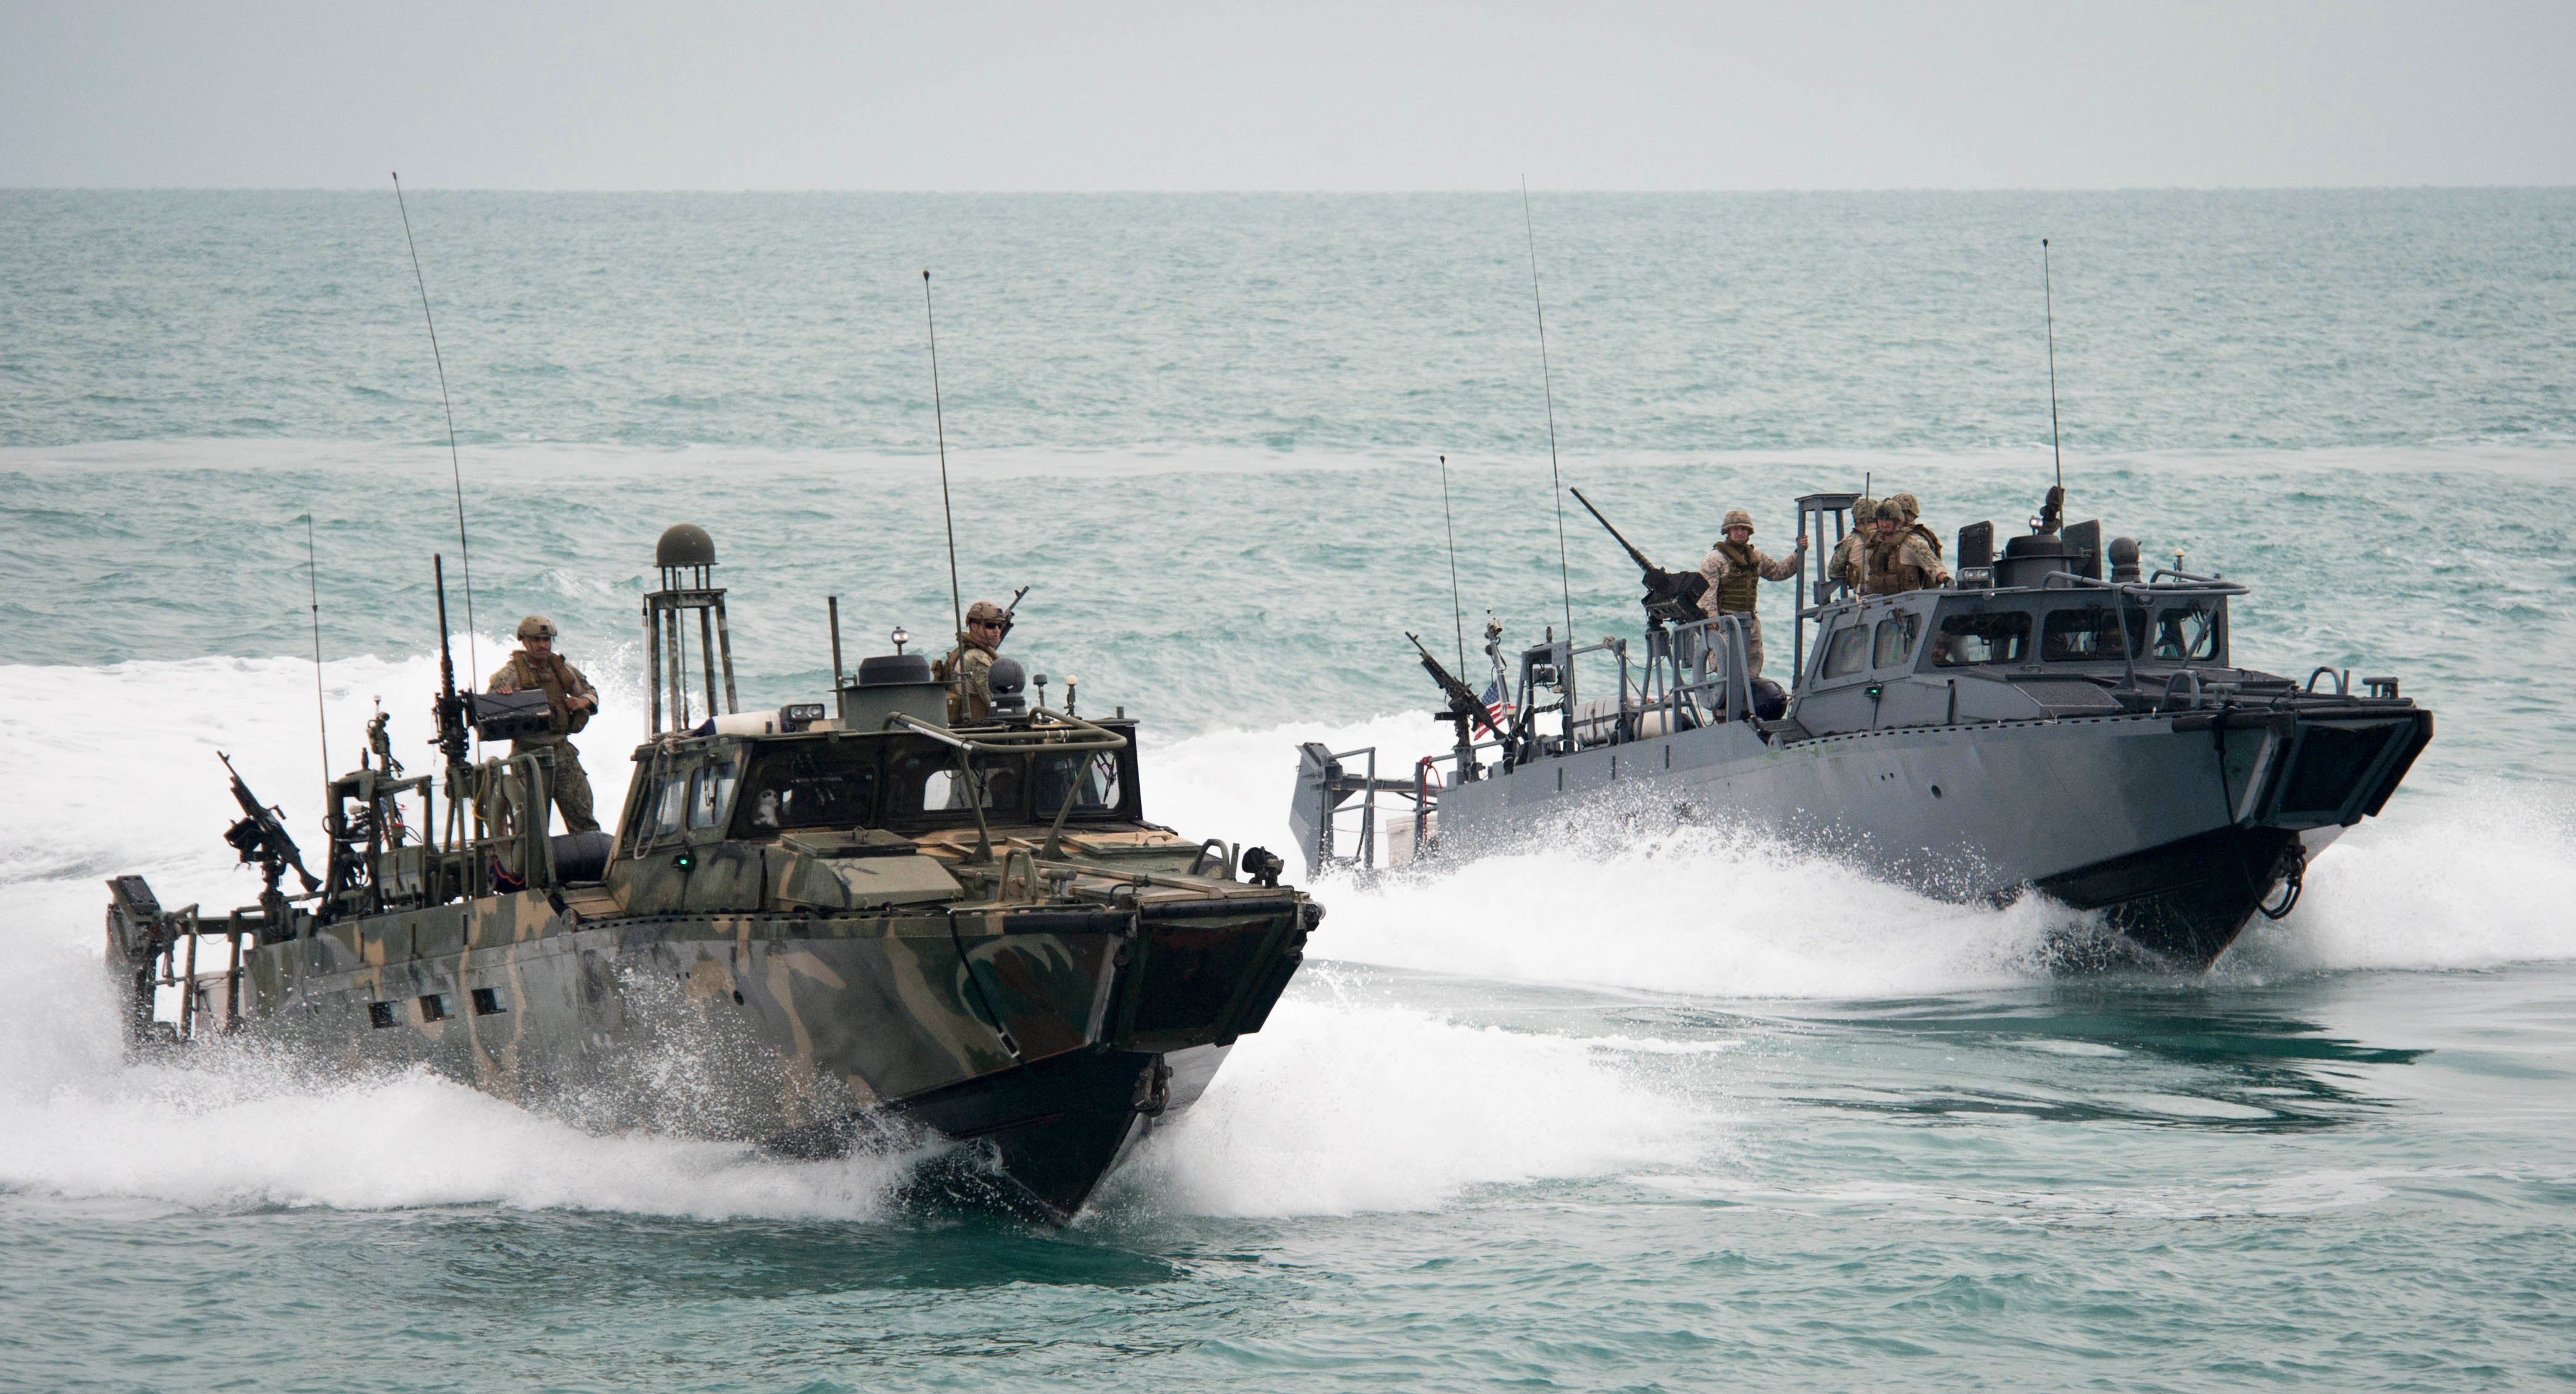 Riverine Command Boats (RCB) 802 and 805 participate in a bi-lateral exercise with Kuwait naval forces in the Persian Gulf in 2015. US Navy Photo